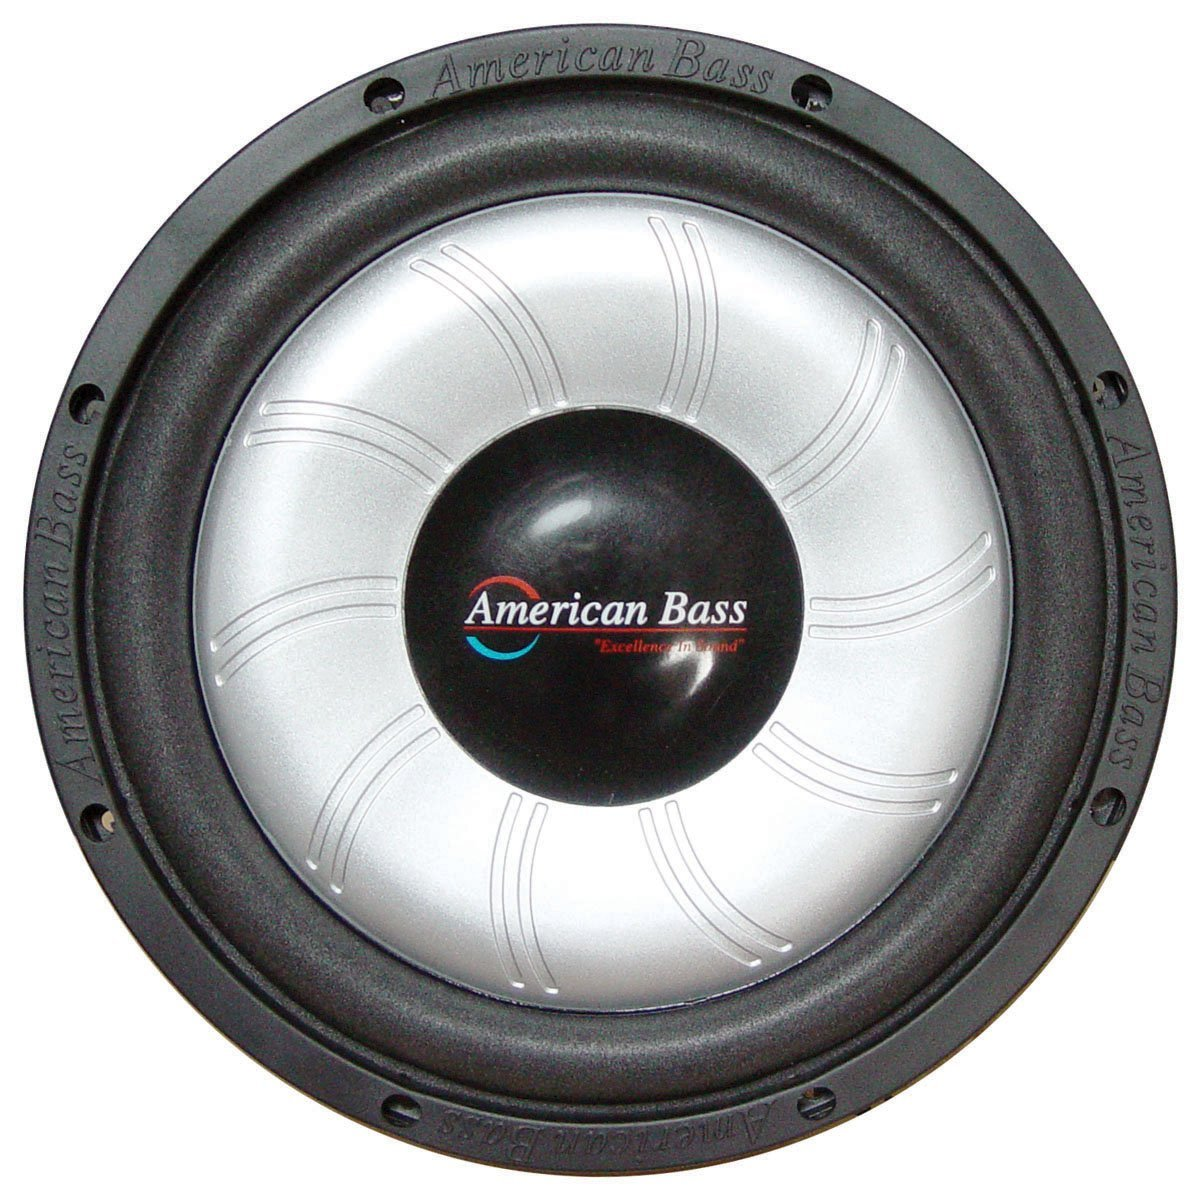 "American Bass SL-104 SL Series 10"" Single 4 Ohm Subwoofer 500 Watts Max Power"